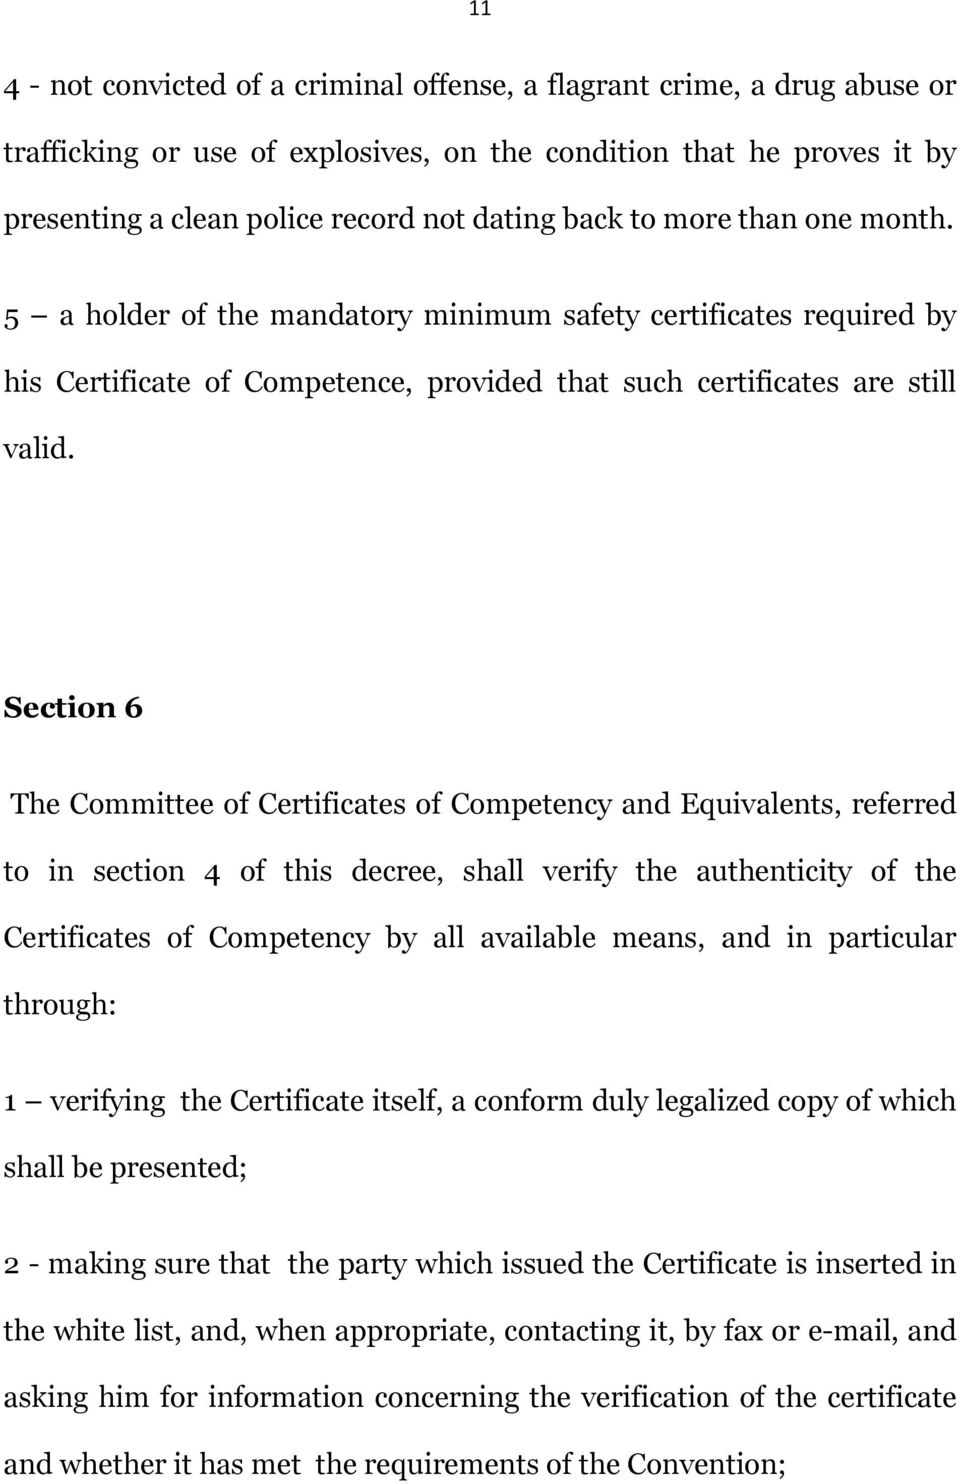 Section 6 The Committee of Certificates of Competency and Equivalents, referred to in section 4 of this decree, shall verify the authenticity of the Certificates of Competency by all available means,